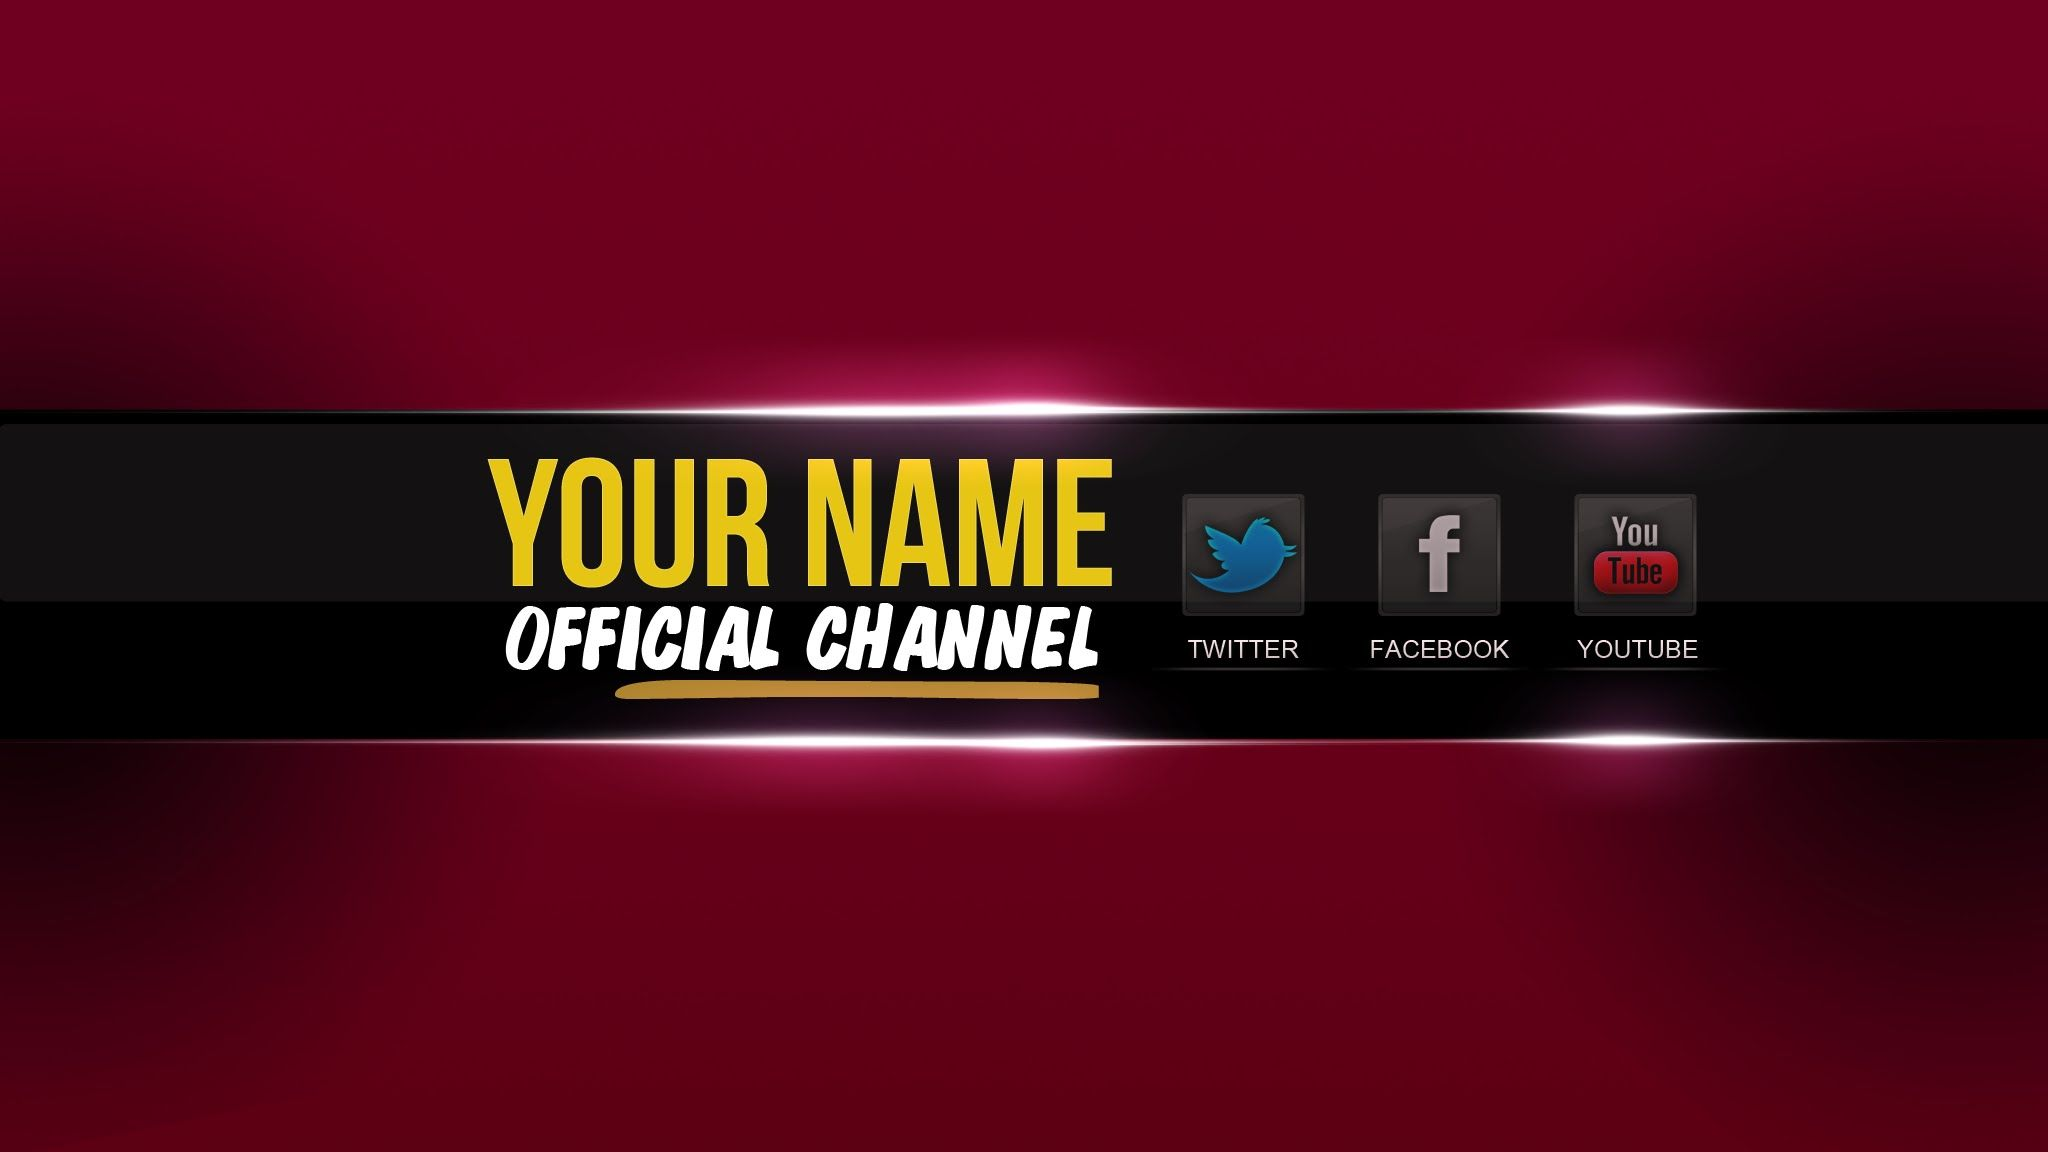 banner youtube - Google zoeken | Rory logo | Pinterest